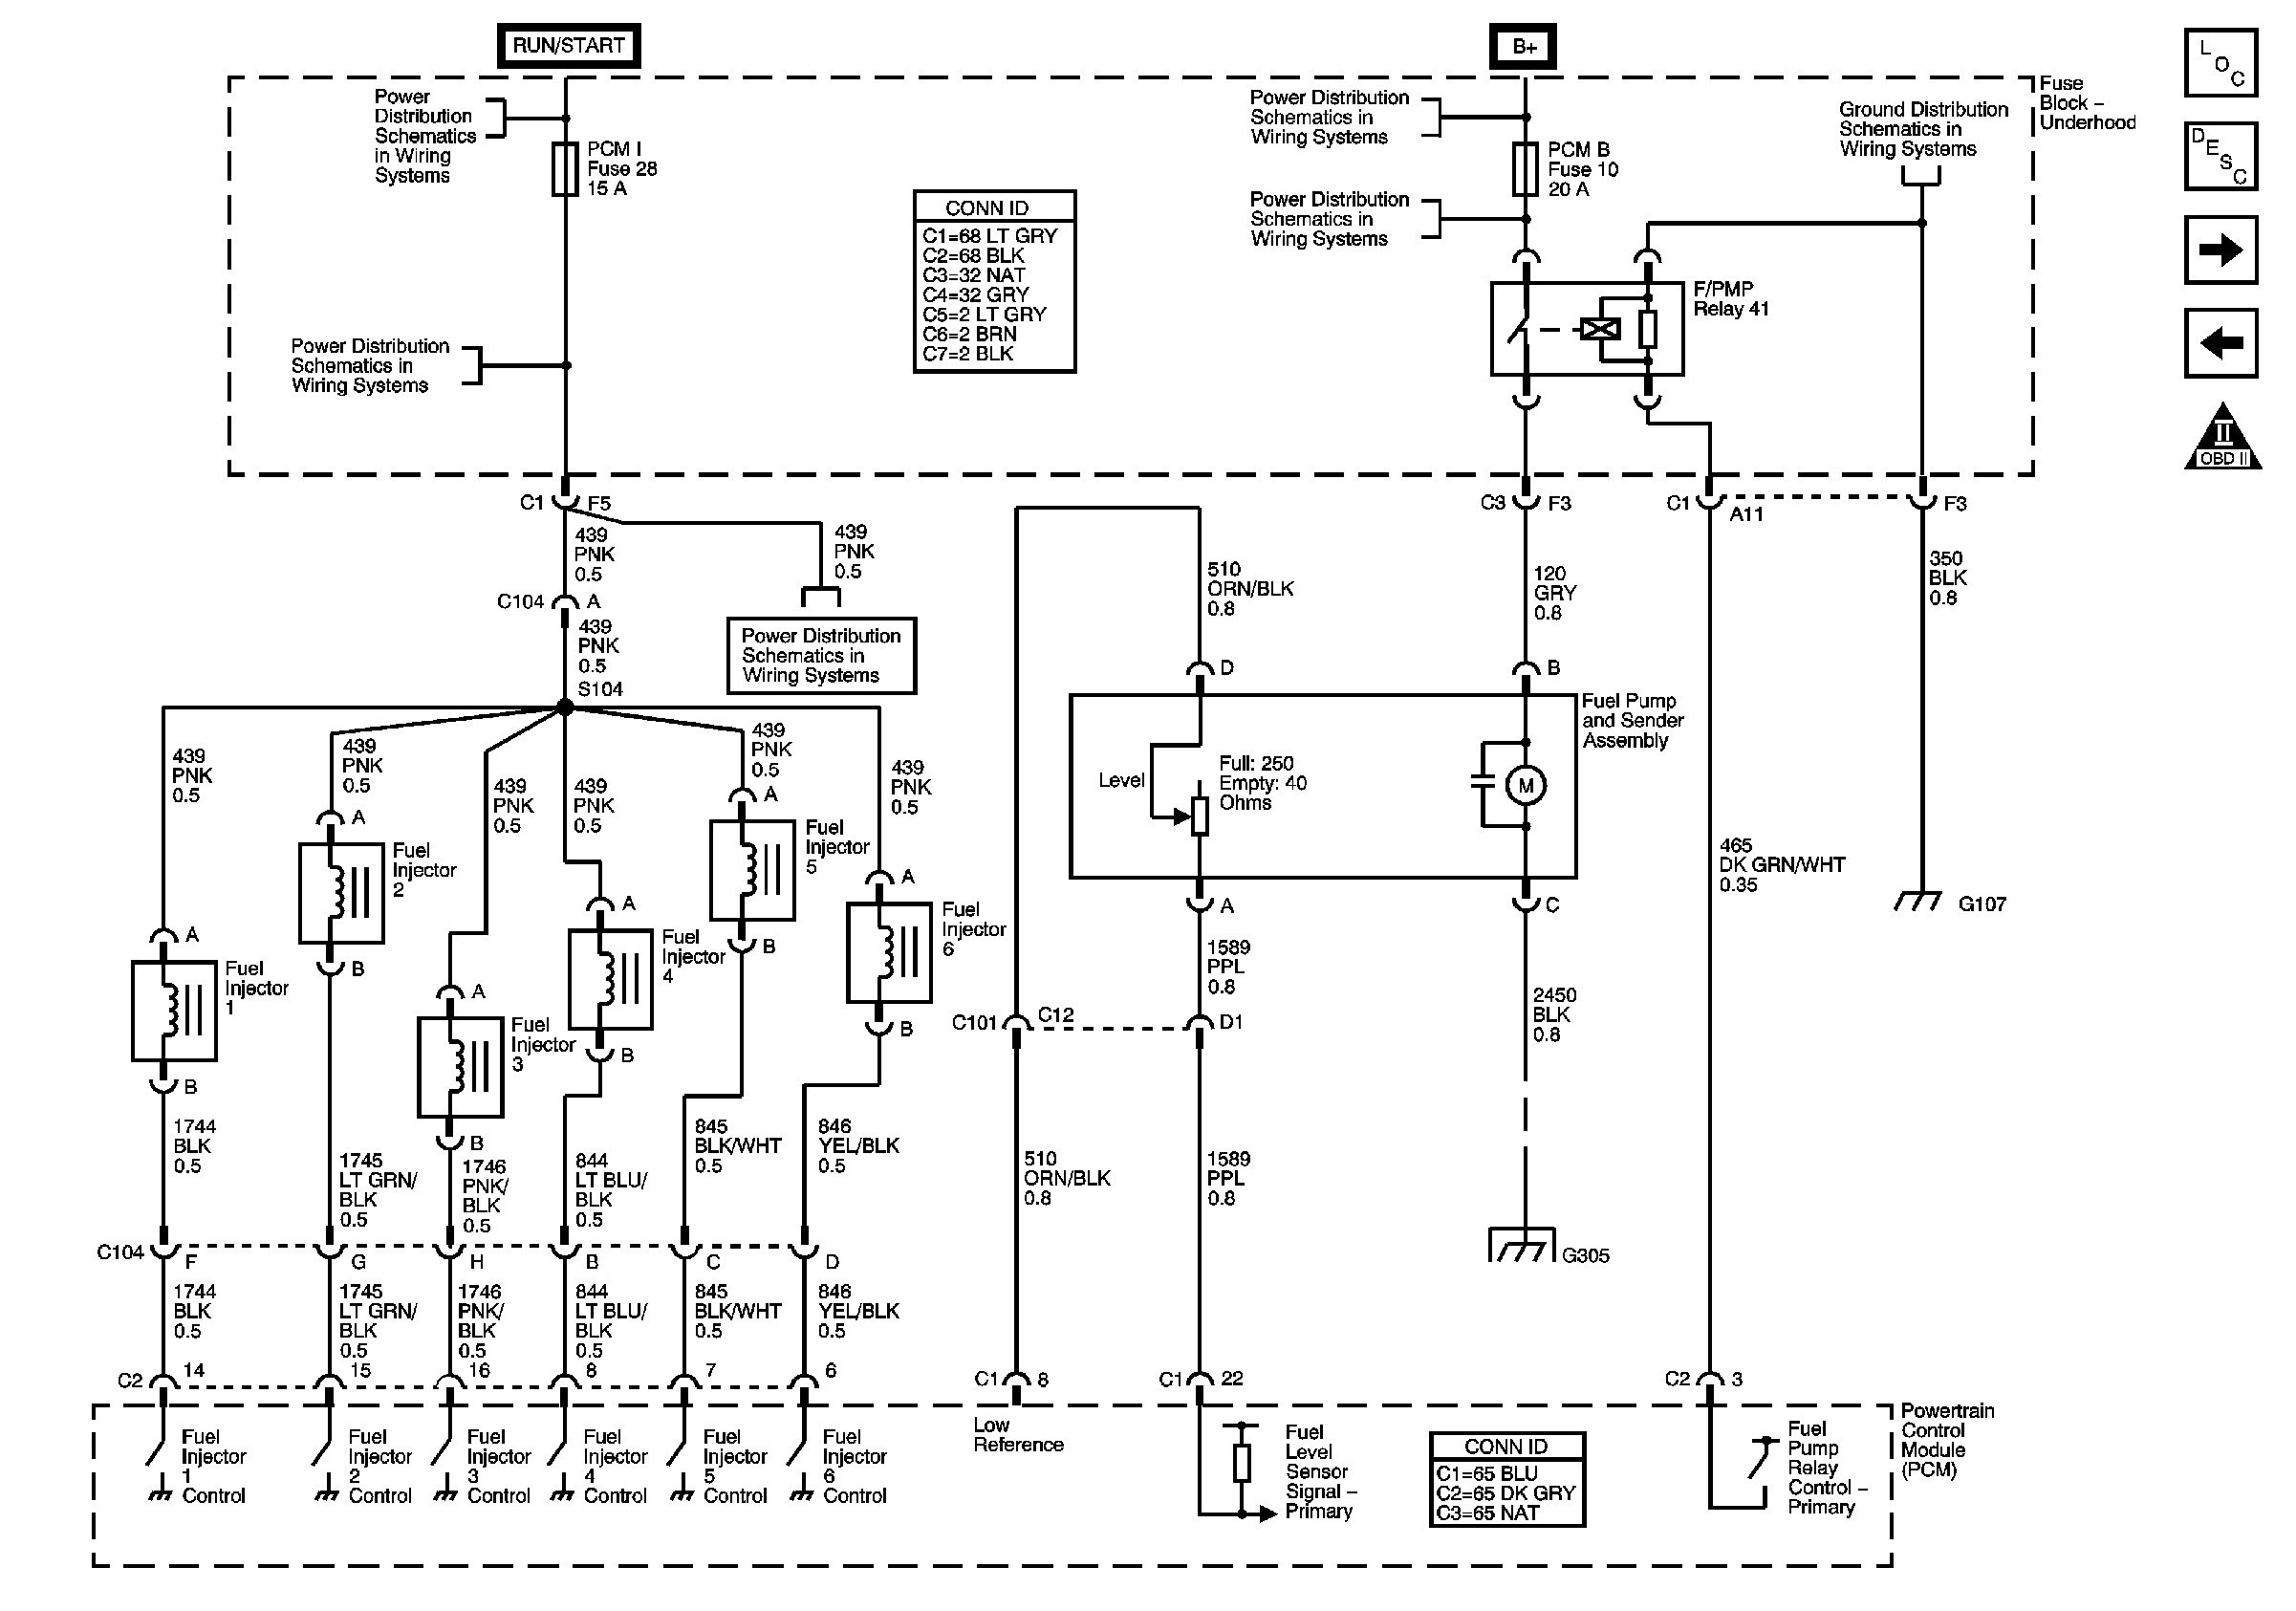 Chevy Colorado Radio Wiring Diagram Rate 2002 Chevy Trailblazer Radio Wiring Diagram Data Wiring Diagrams •